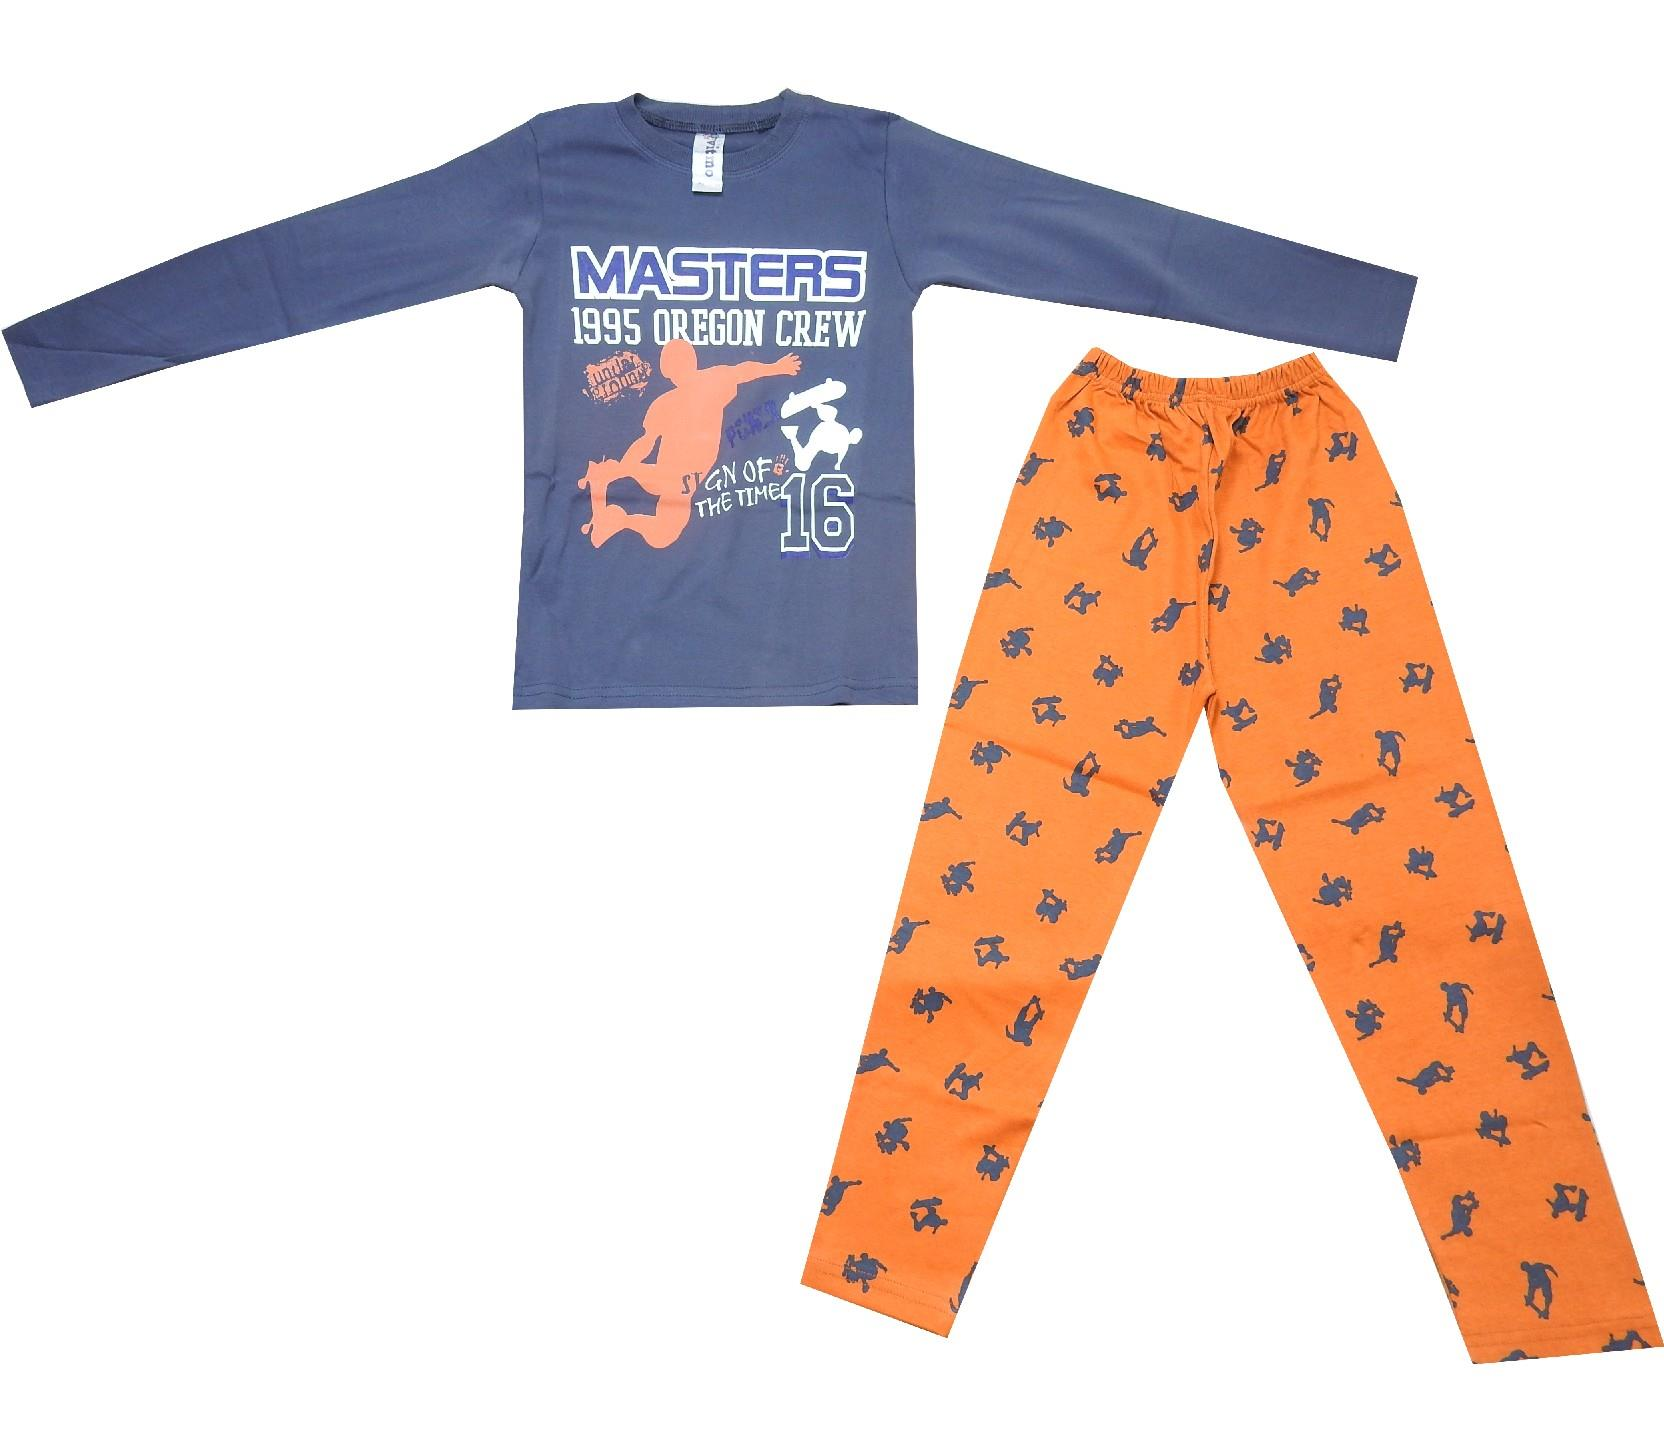 5128 Wholesale masters print pyjama for boy (10-11-12 age)